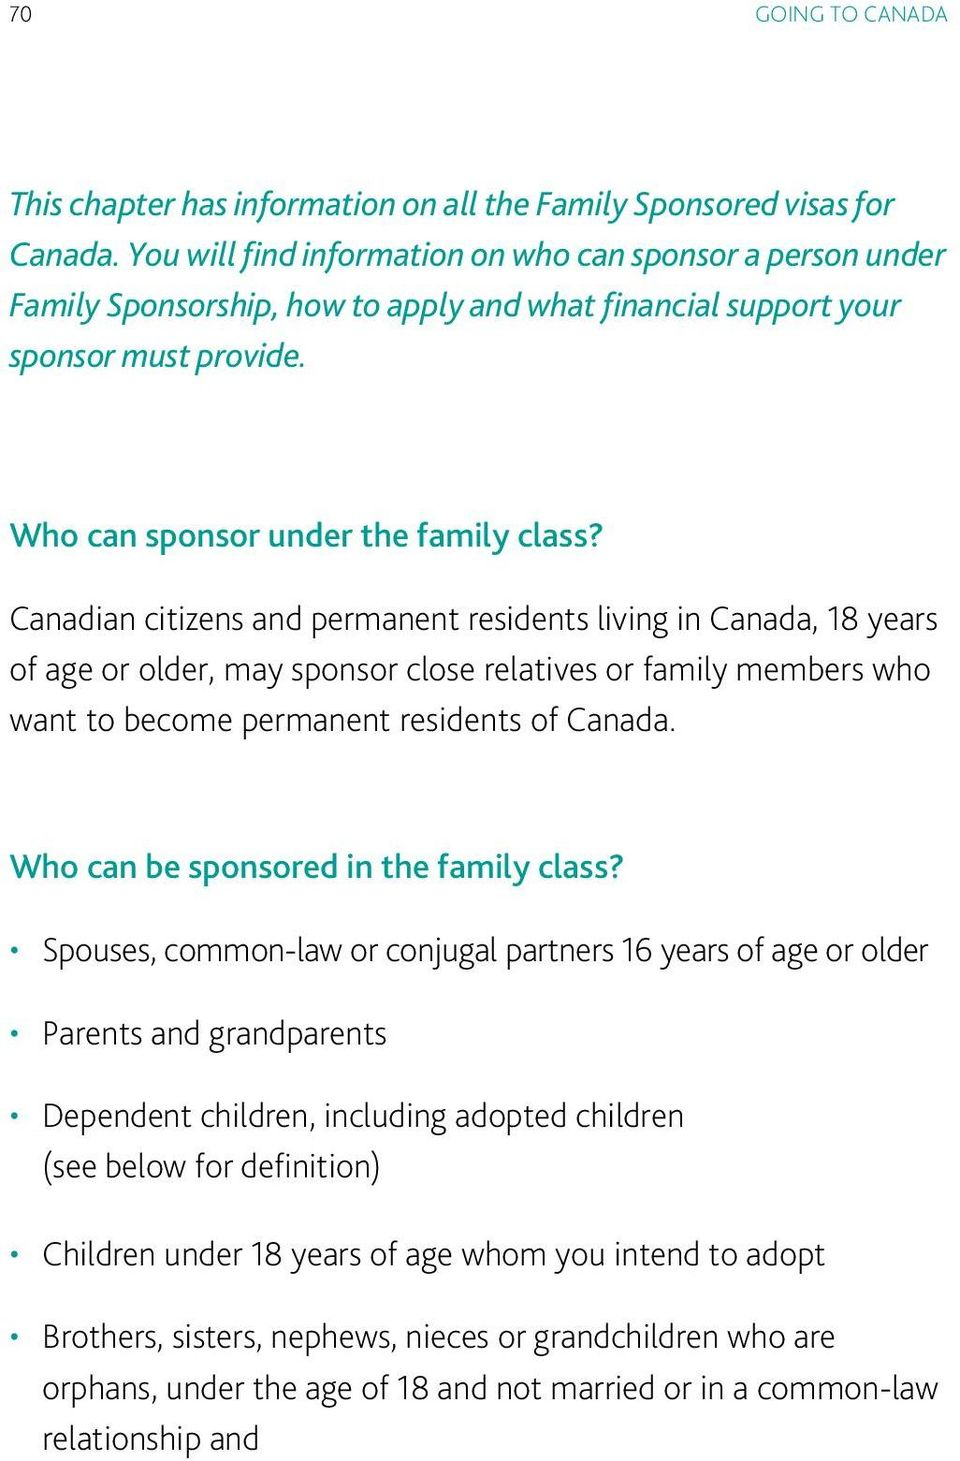 Canadian citizens and permanent residents living in Canada, 18 years of age or older, may sponsor close relatives or family members who want to become permanent residents of Canada.